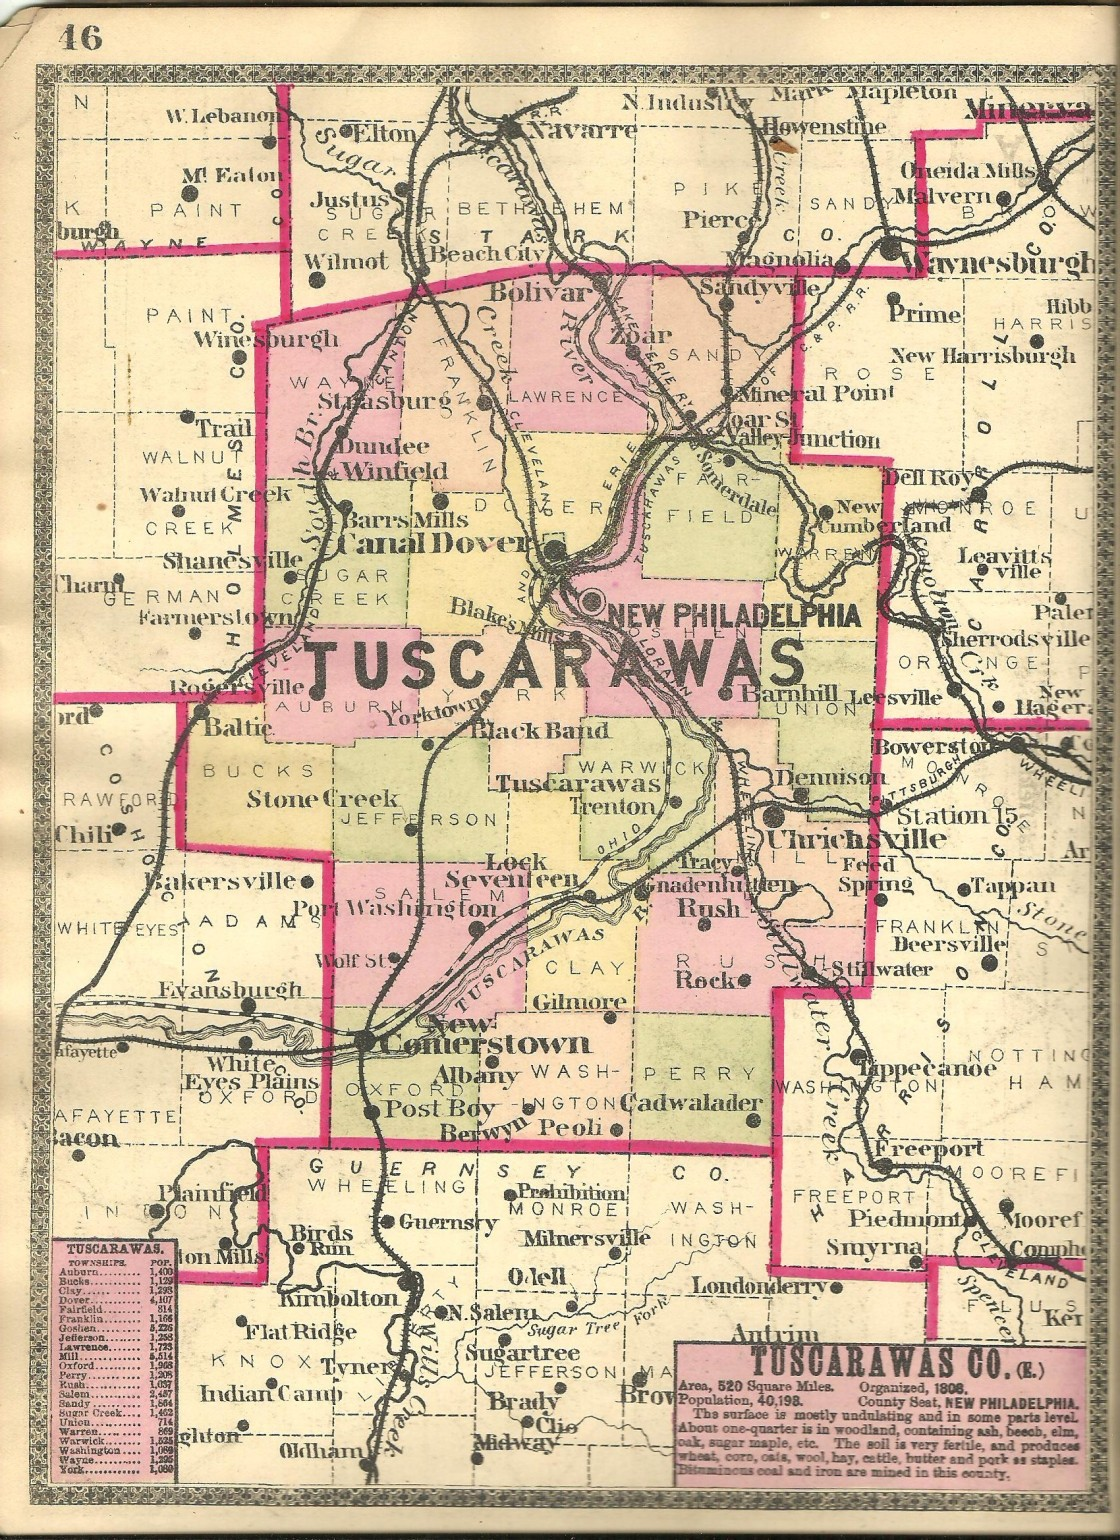 Tuscarawas County – Ohio Ghost Town Exploration Co. on newark ohio road map, cleveland ohio road map, dublin ohio road map, north canton ohio road map, dayton ohio road map, marietta ohio road map, ashtabula county township map, ashland ohio road map, tuscarawas county ohio fair, marion ohio road map, ashtabula county road map, youngstown ohio road map, springfield ohio road map, lancaster ohio road map, hudson ohio road map, toledo ohio road map, dover ohio road map, lima ohio road map, cincinnati ohio road map, stark county ohio section map,